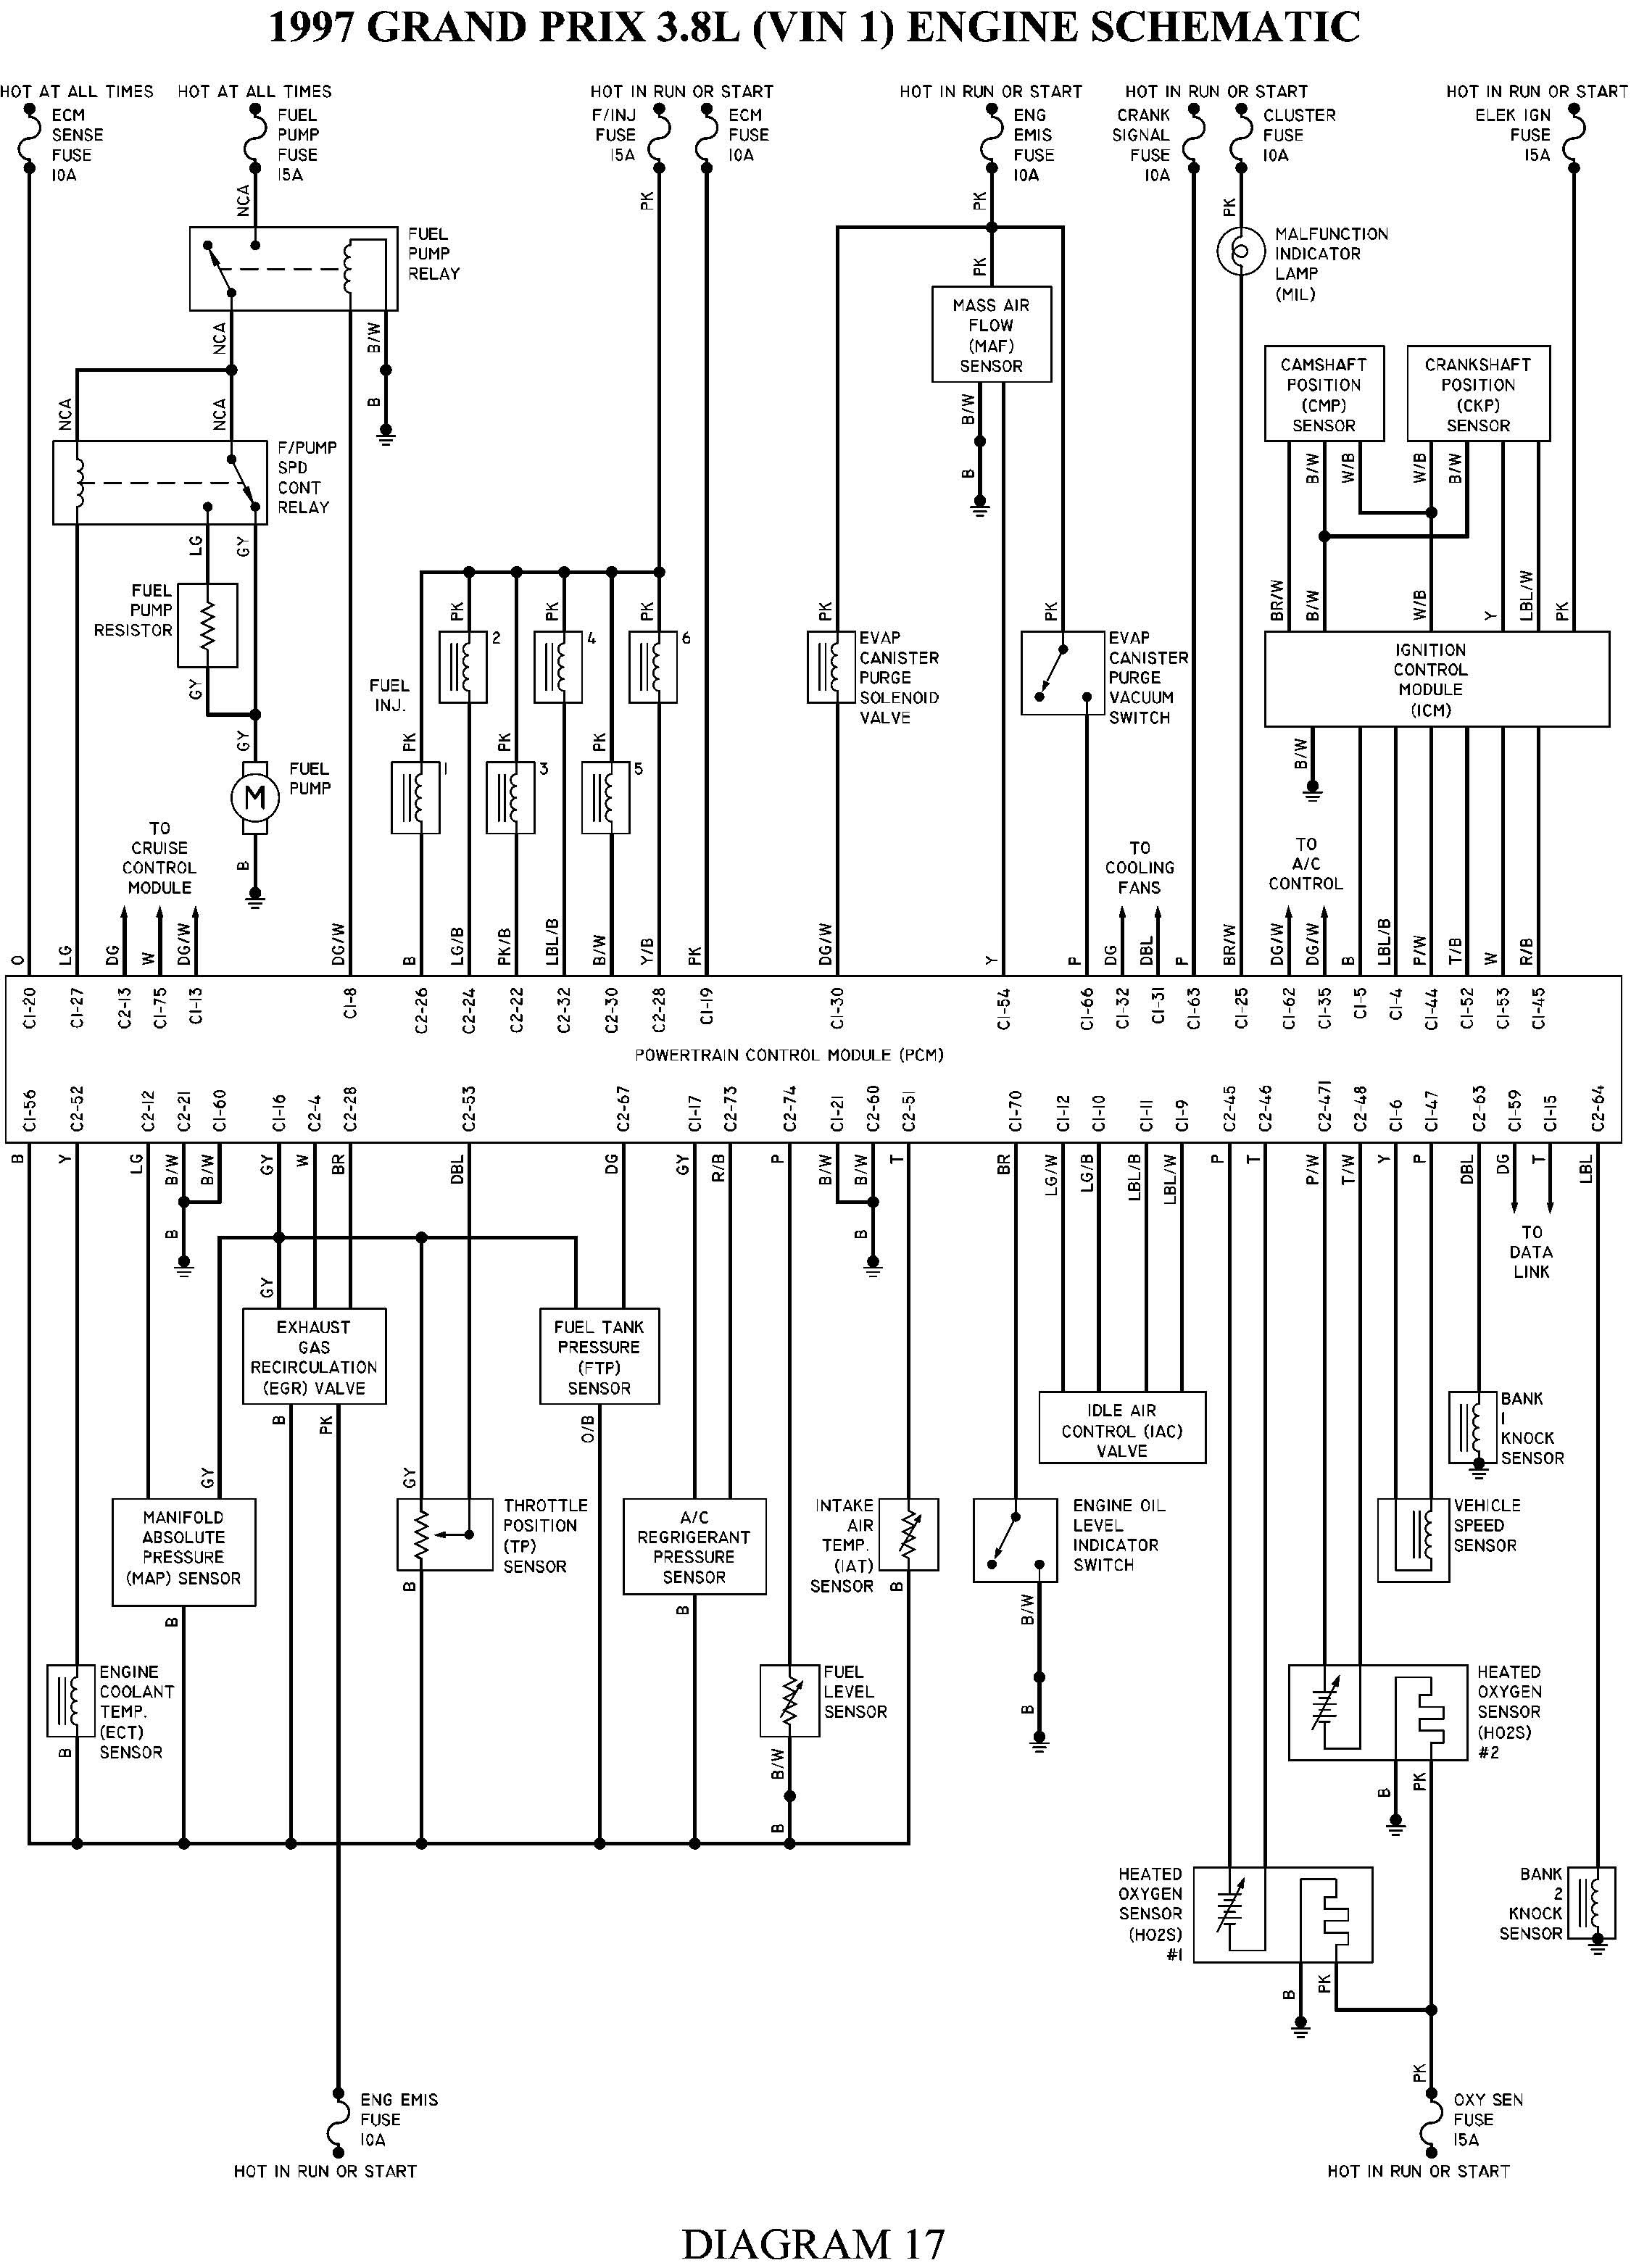 2002 Pontiac Grand Prix Ignition Wiring Diagram